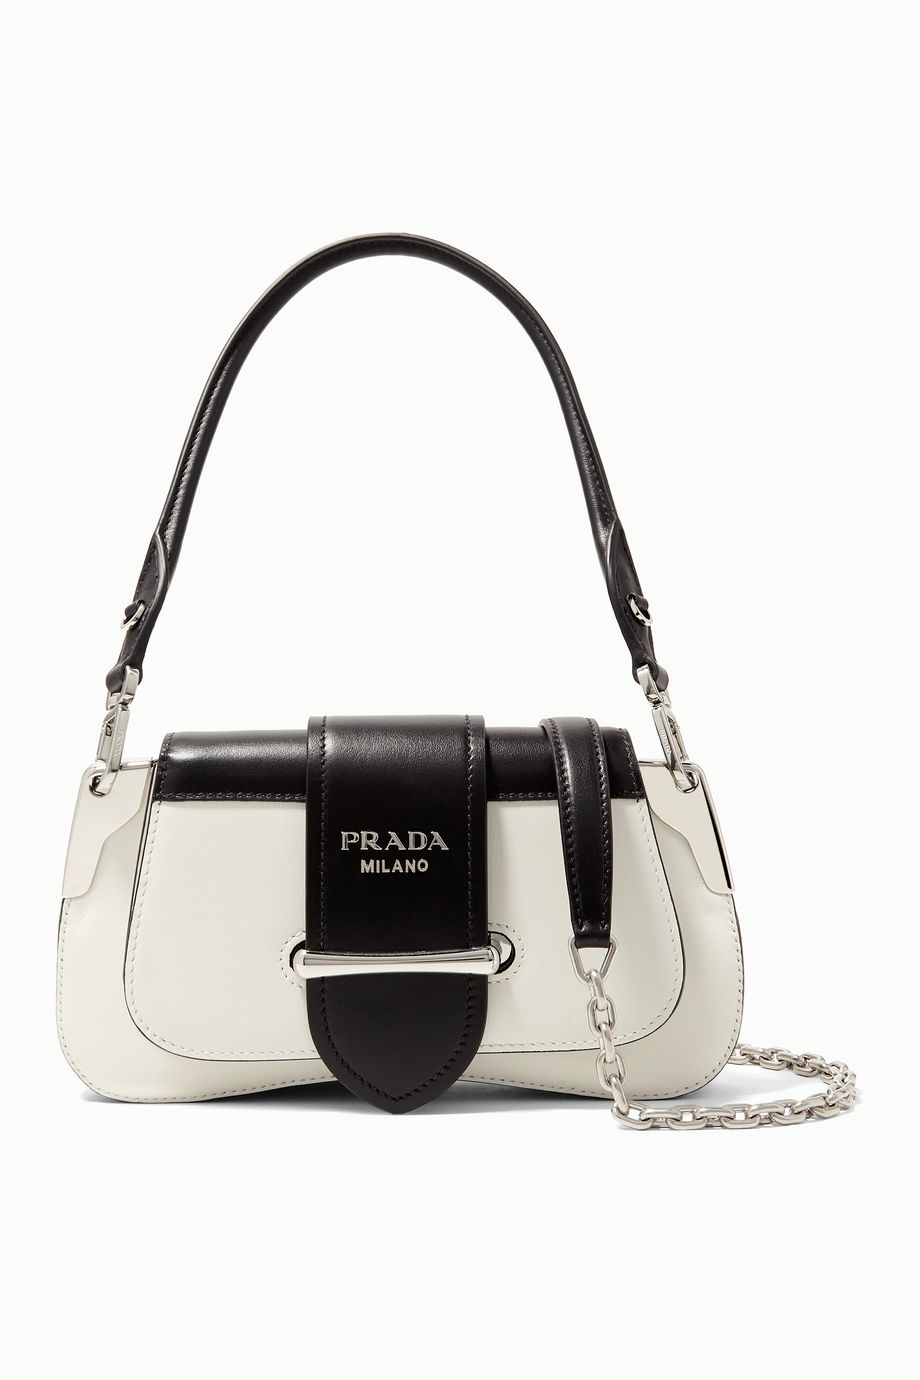 Prada Sidonie mini two-tone leather shoulder bag